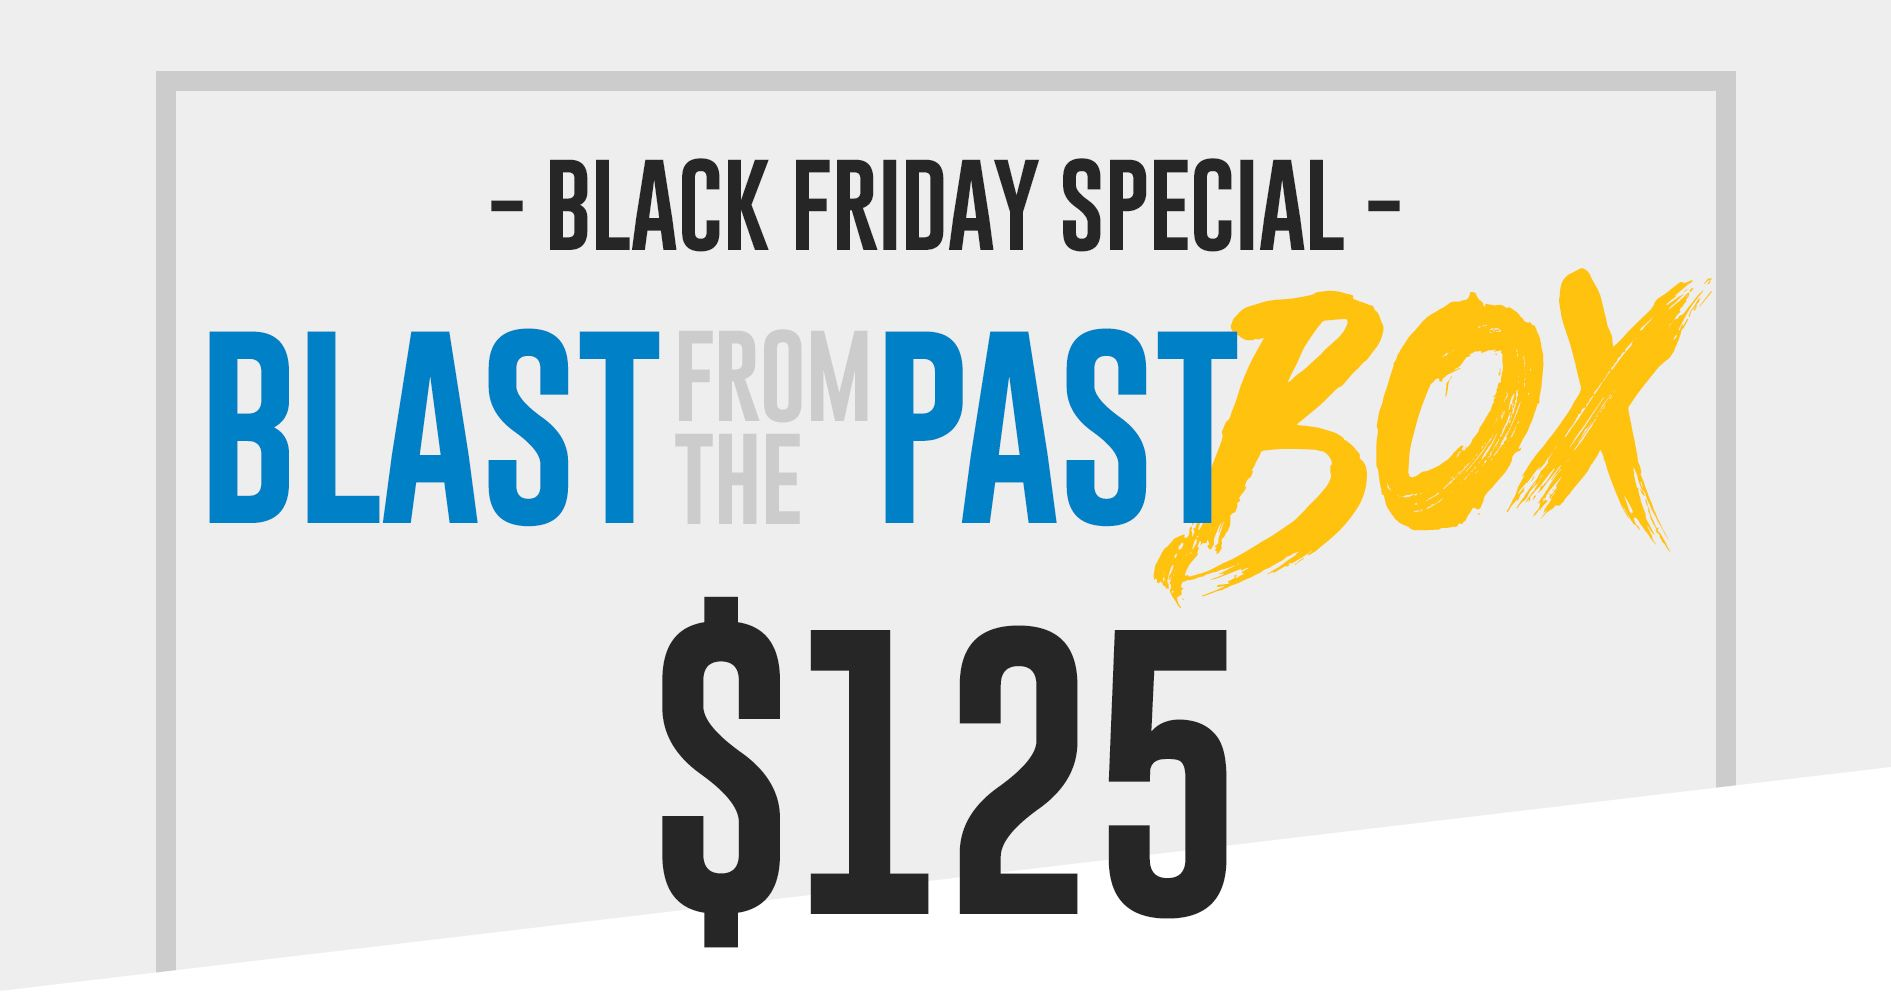 The Blast From the Past Box is Sold Out